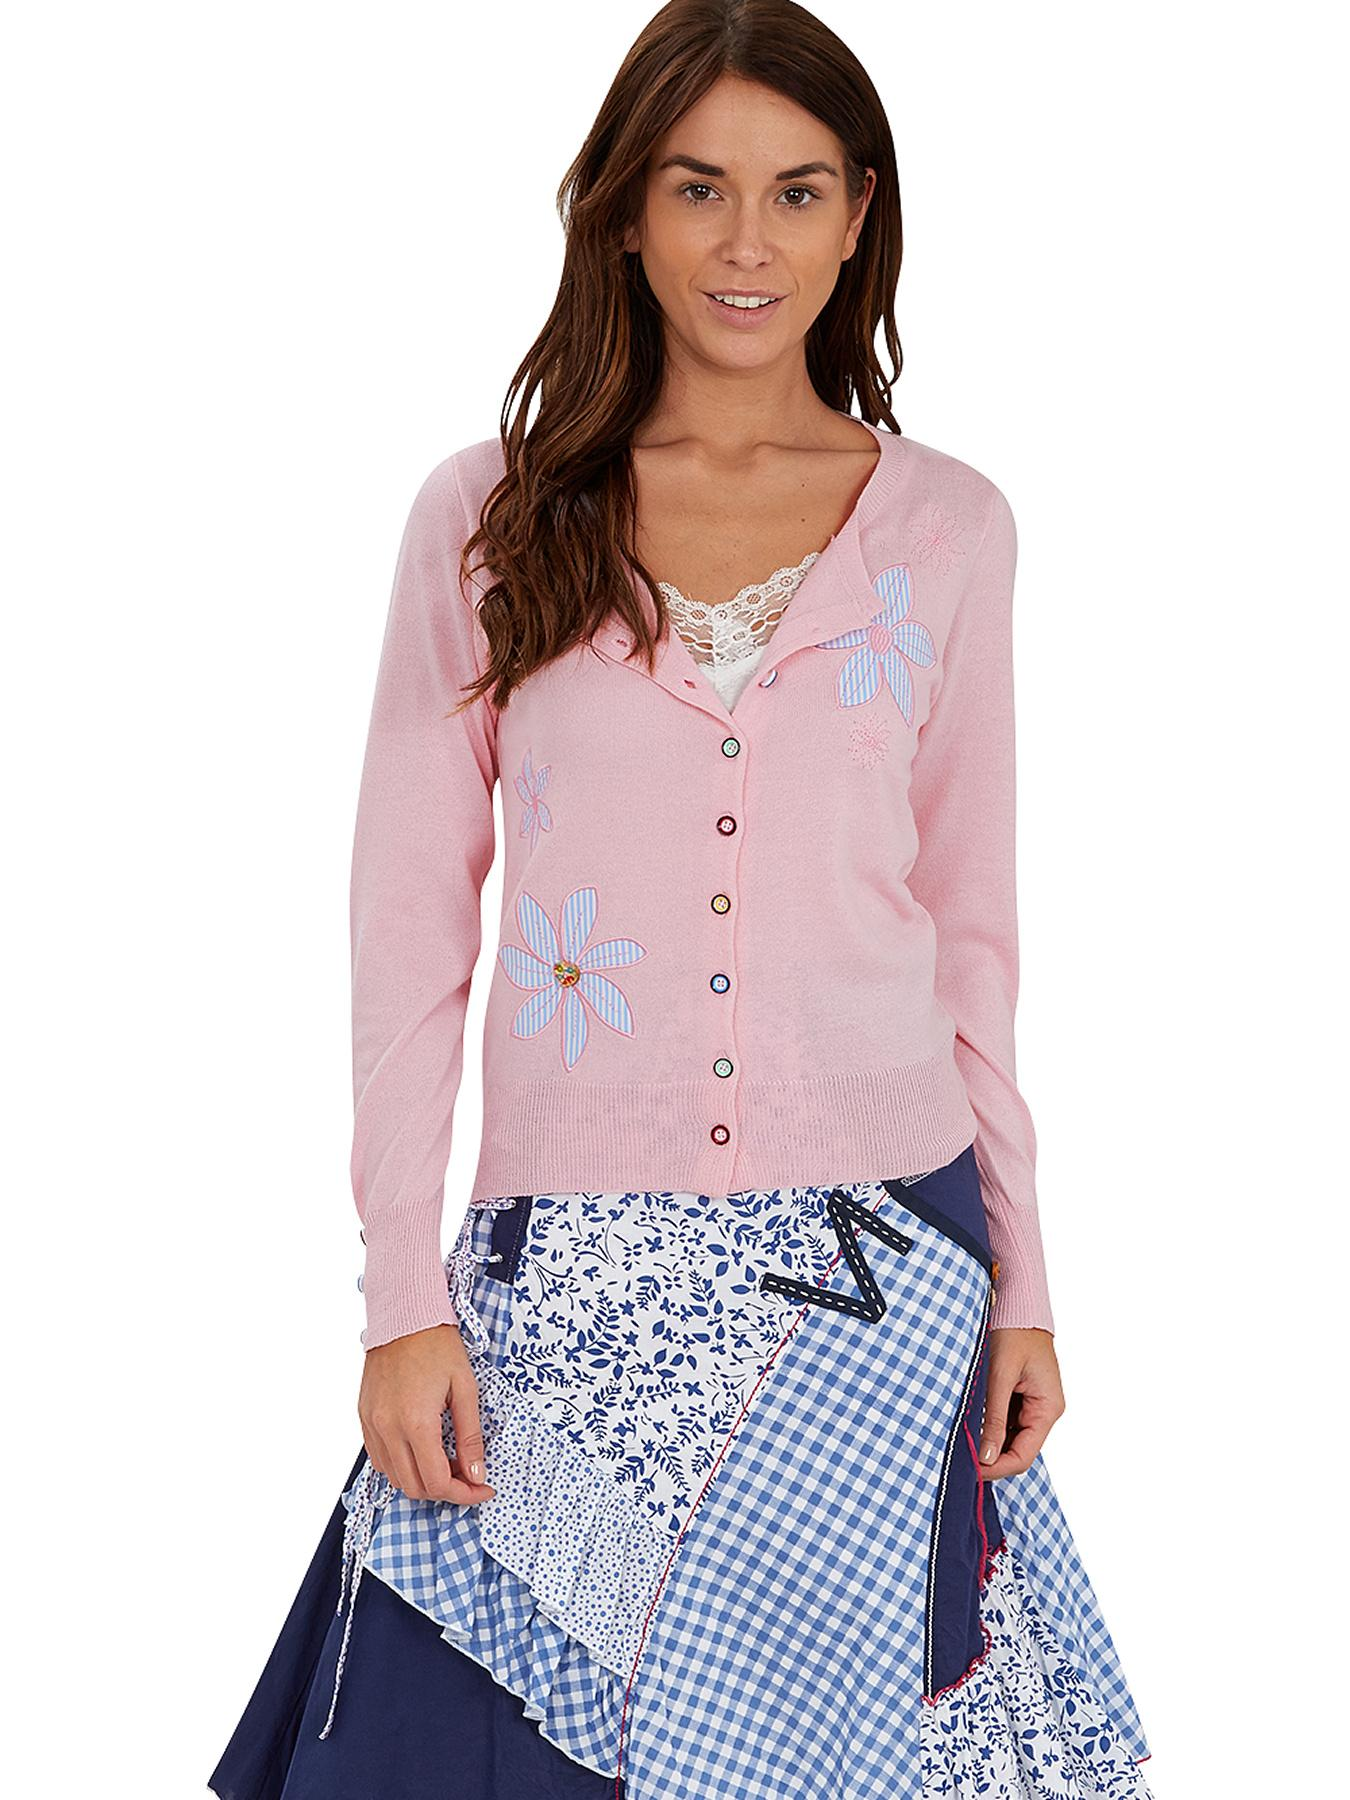 Joe Browns Vintage Applique Cardigan - Pink, Pink